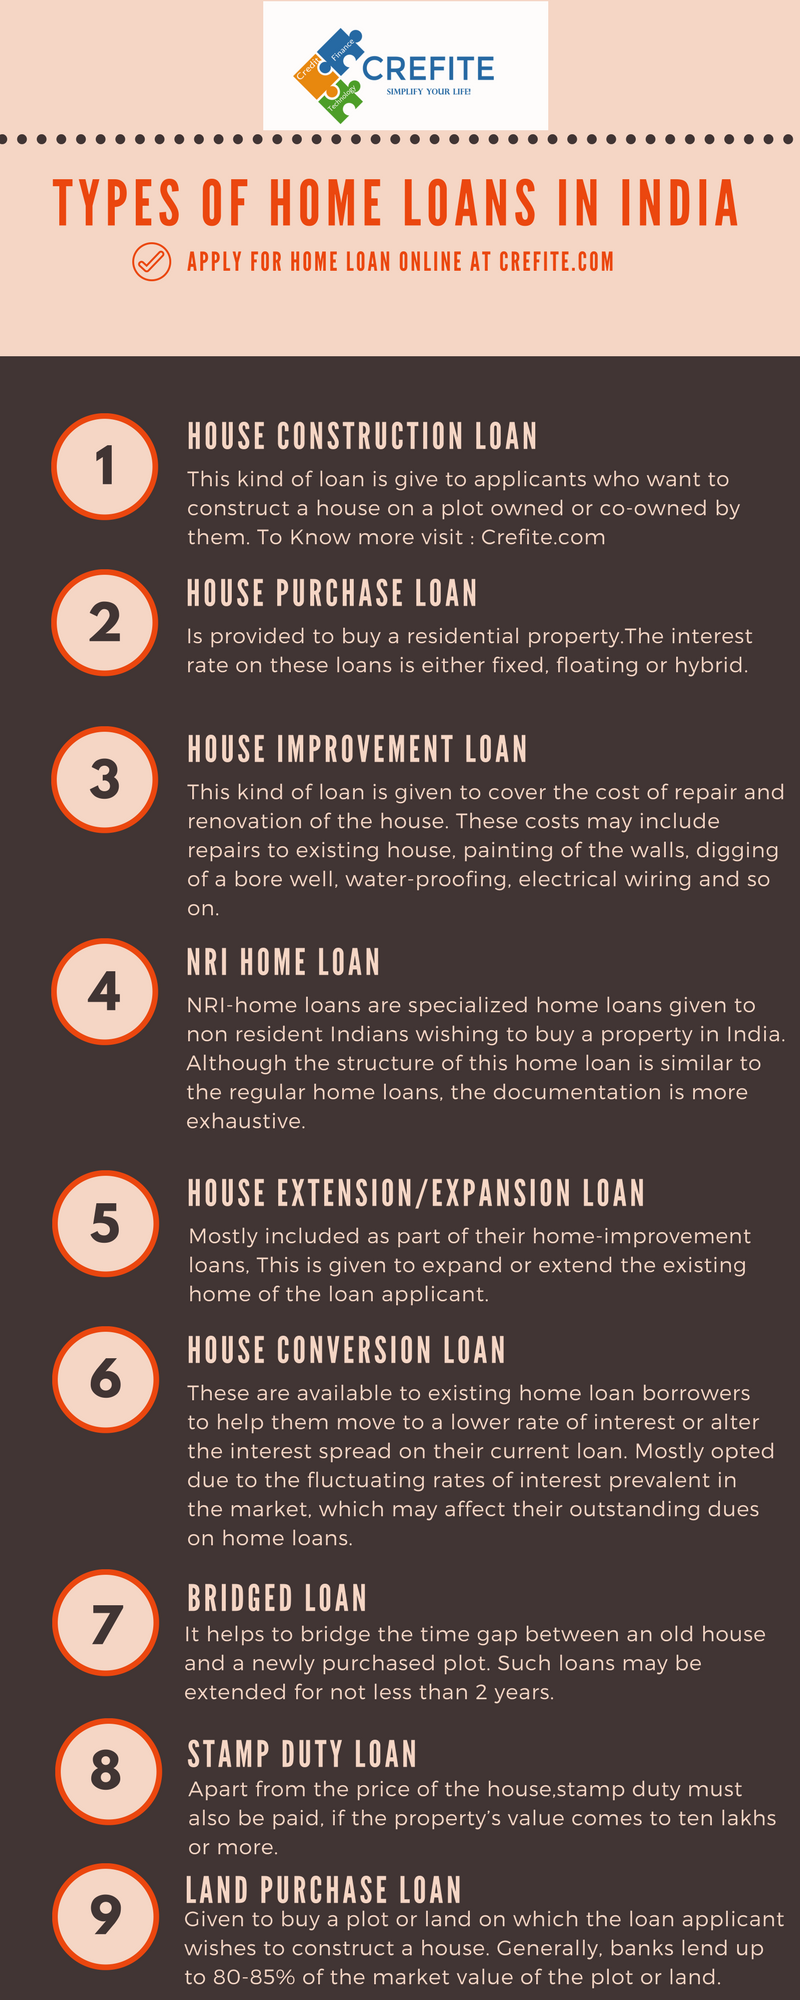 Types of Home Loans in India